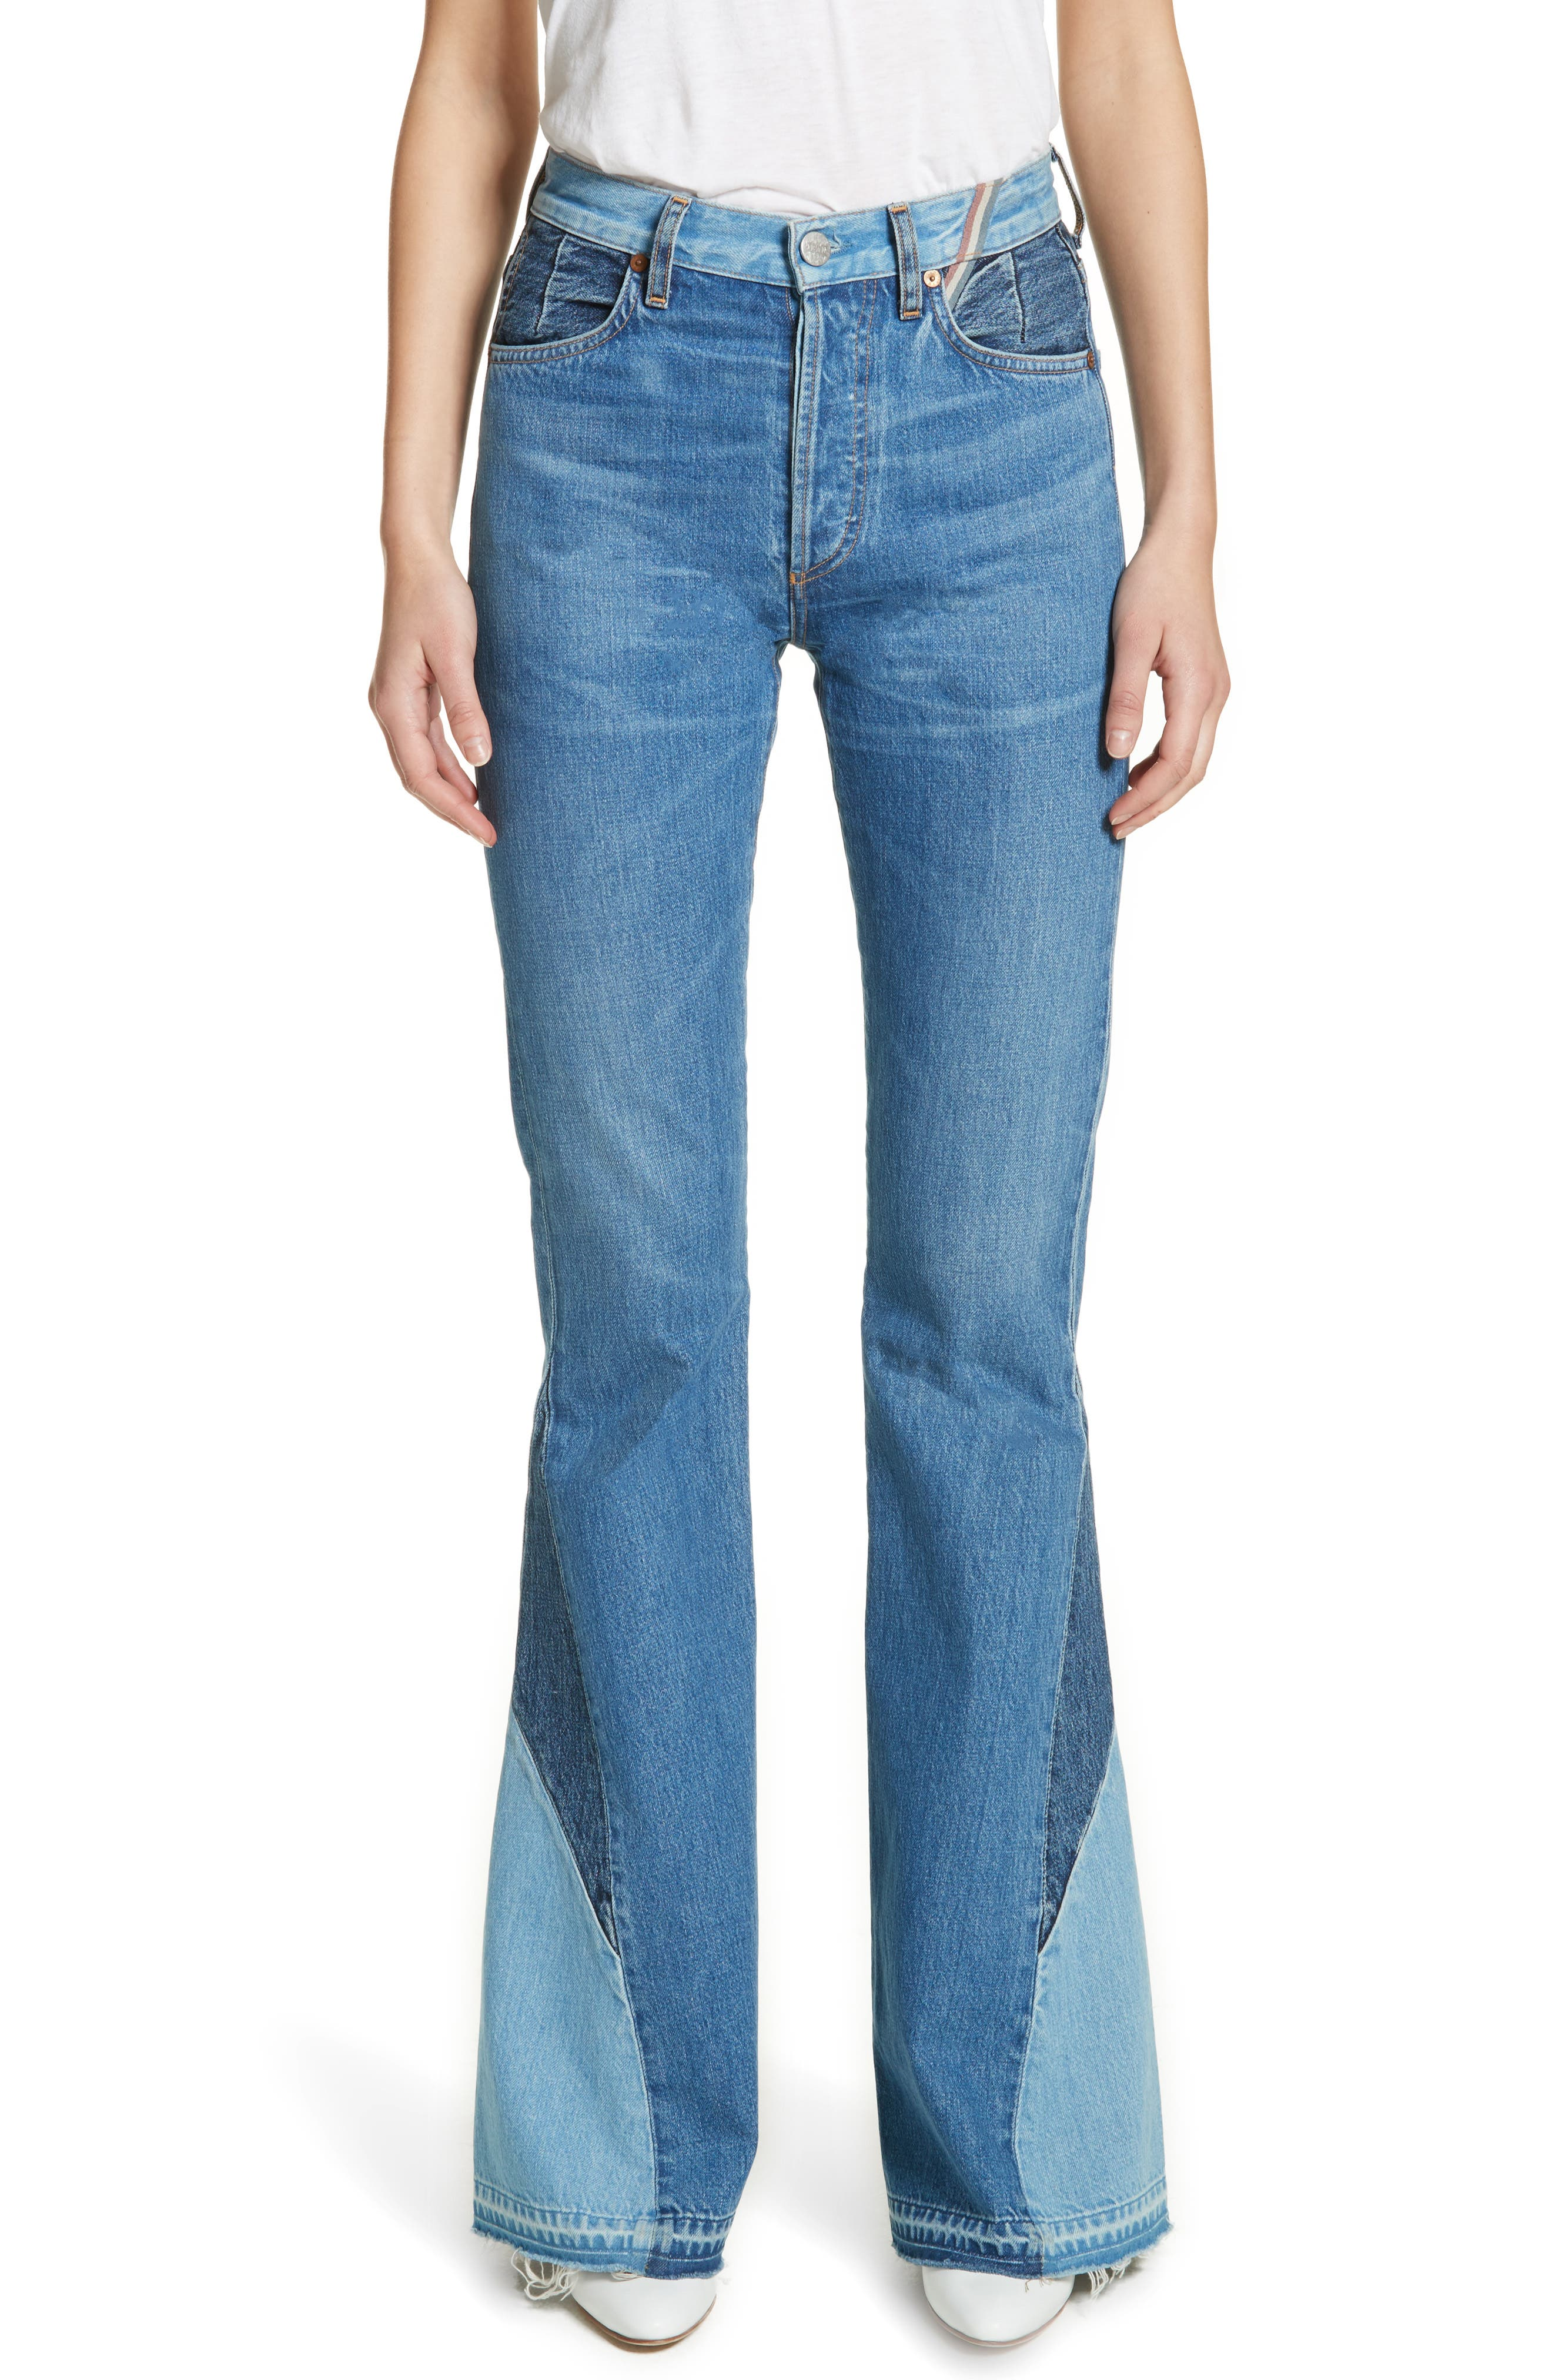 Main Image - Jean Atelier Janis High Rise Flare Jeans (Jagger)